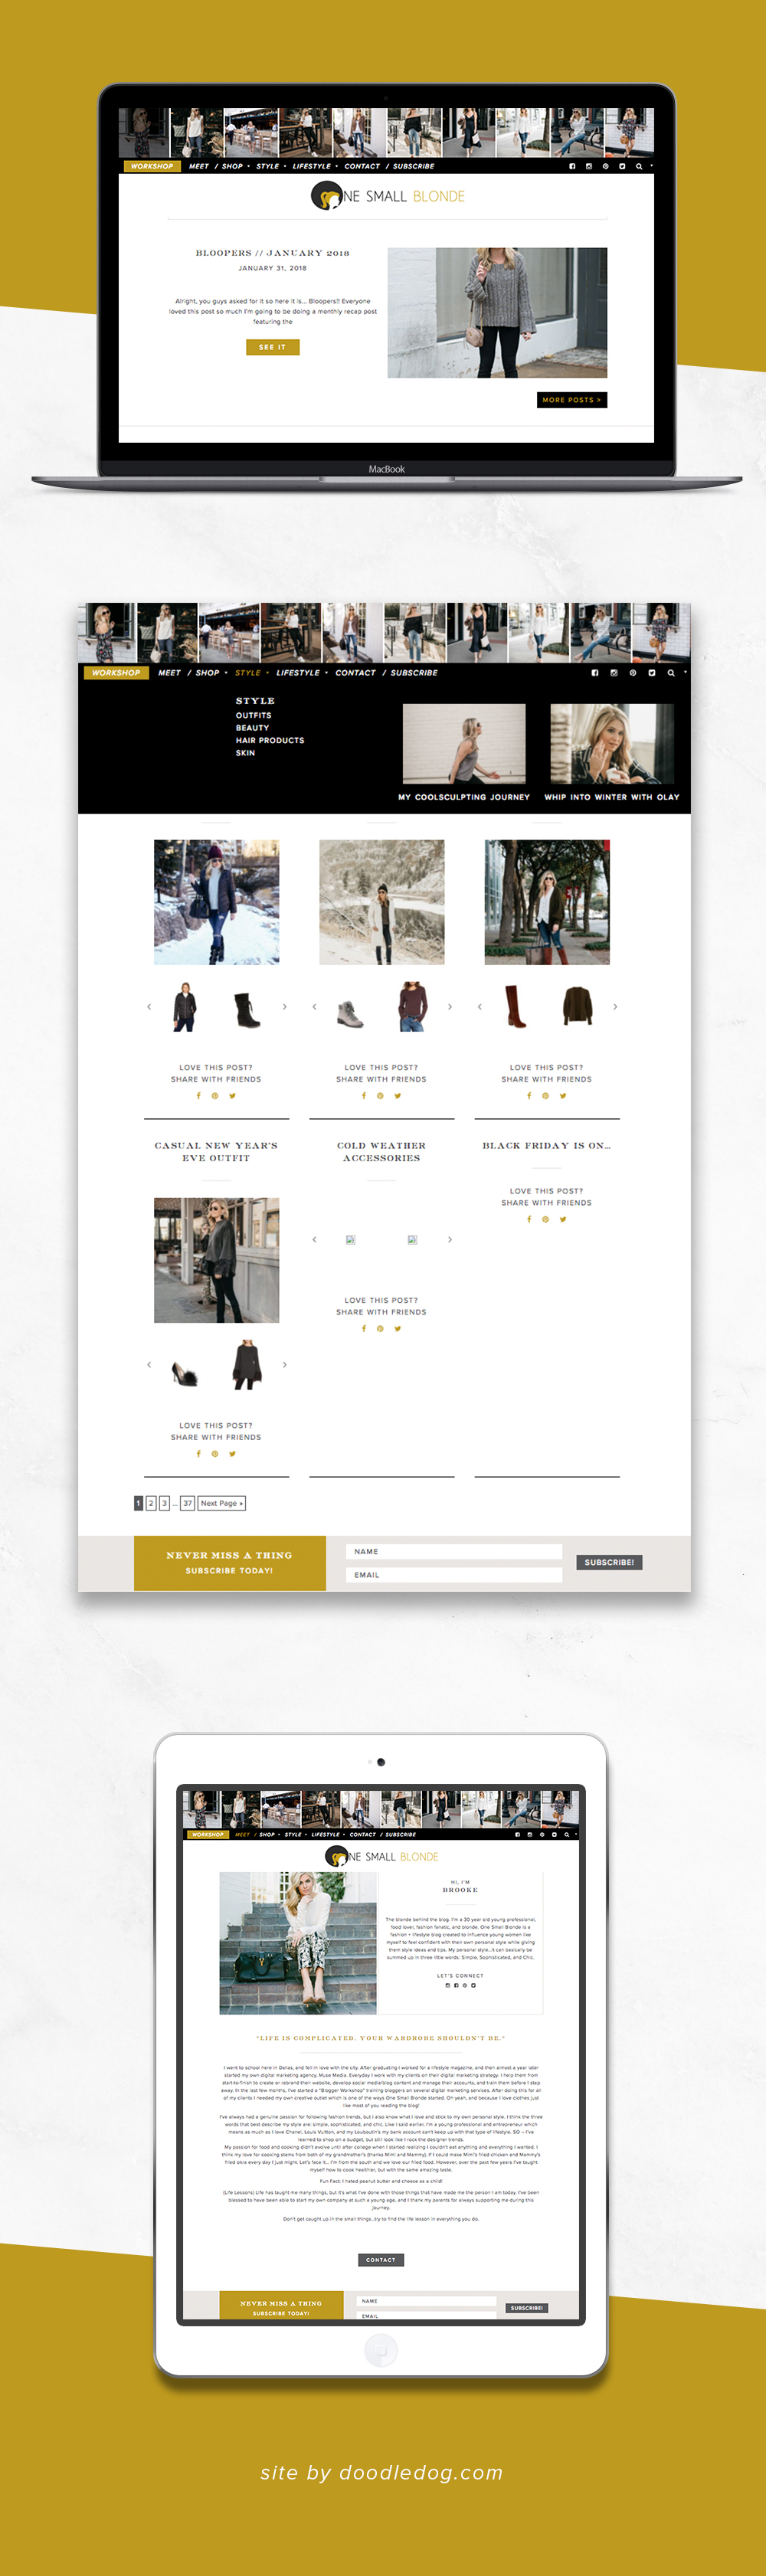 Fashion Blogger Website Design